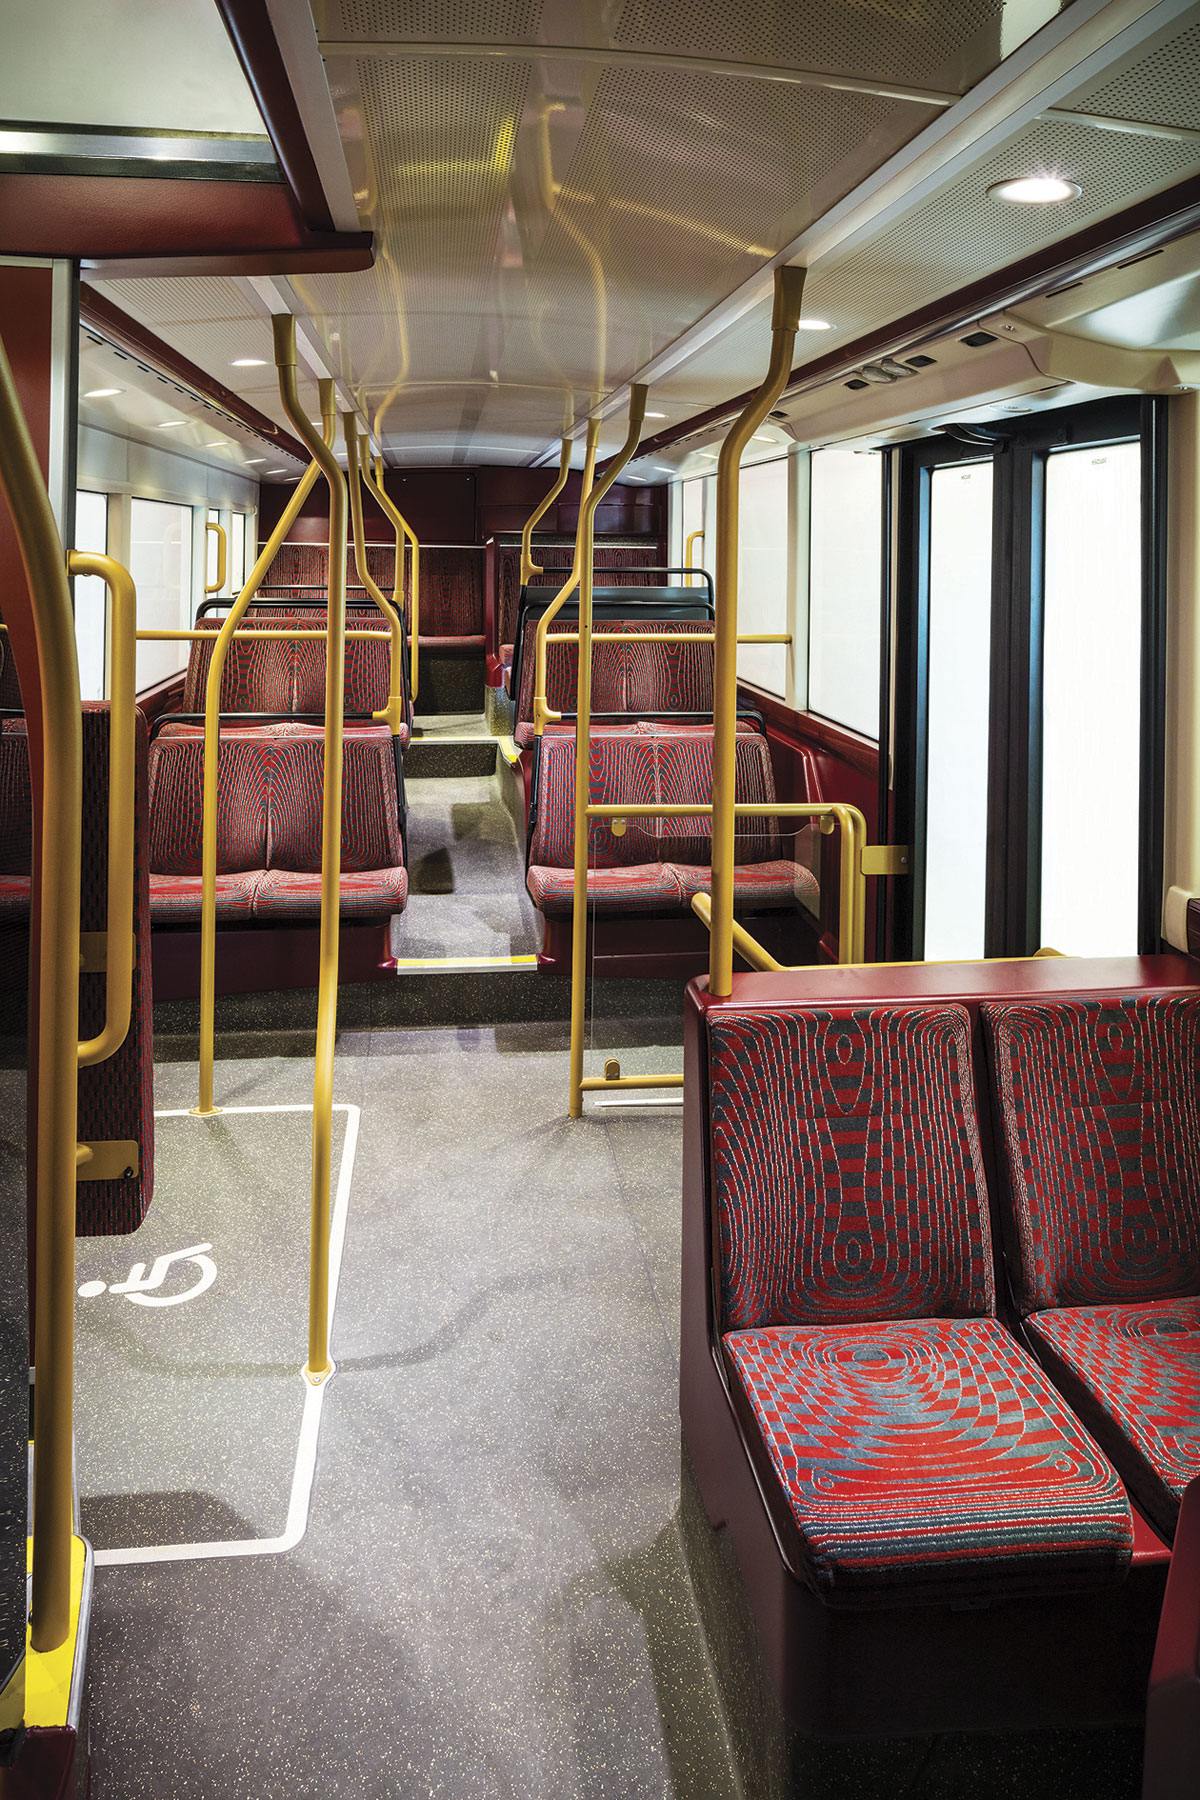 The lower deck showing the two, rather than three, door layout